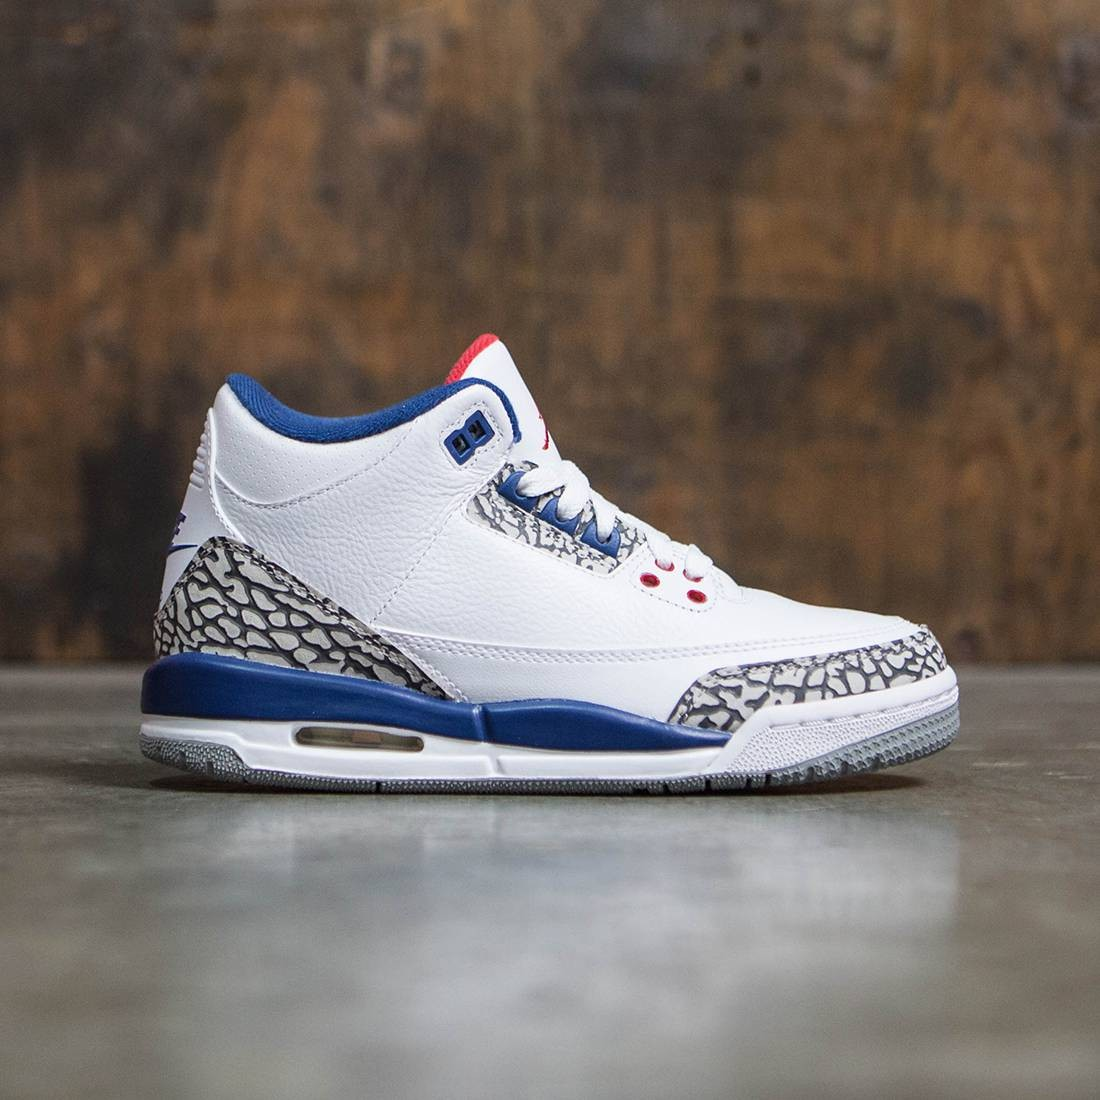 brand new 459e1 42c5c Jordan Big Kids AIR JORDAN 3 RETRO OG BG True Blue (white   fire red-true  blue-cement grey)